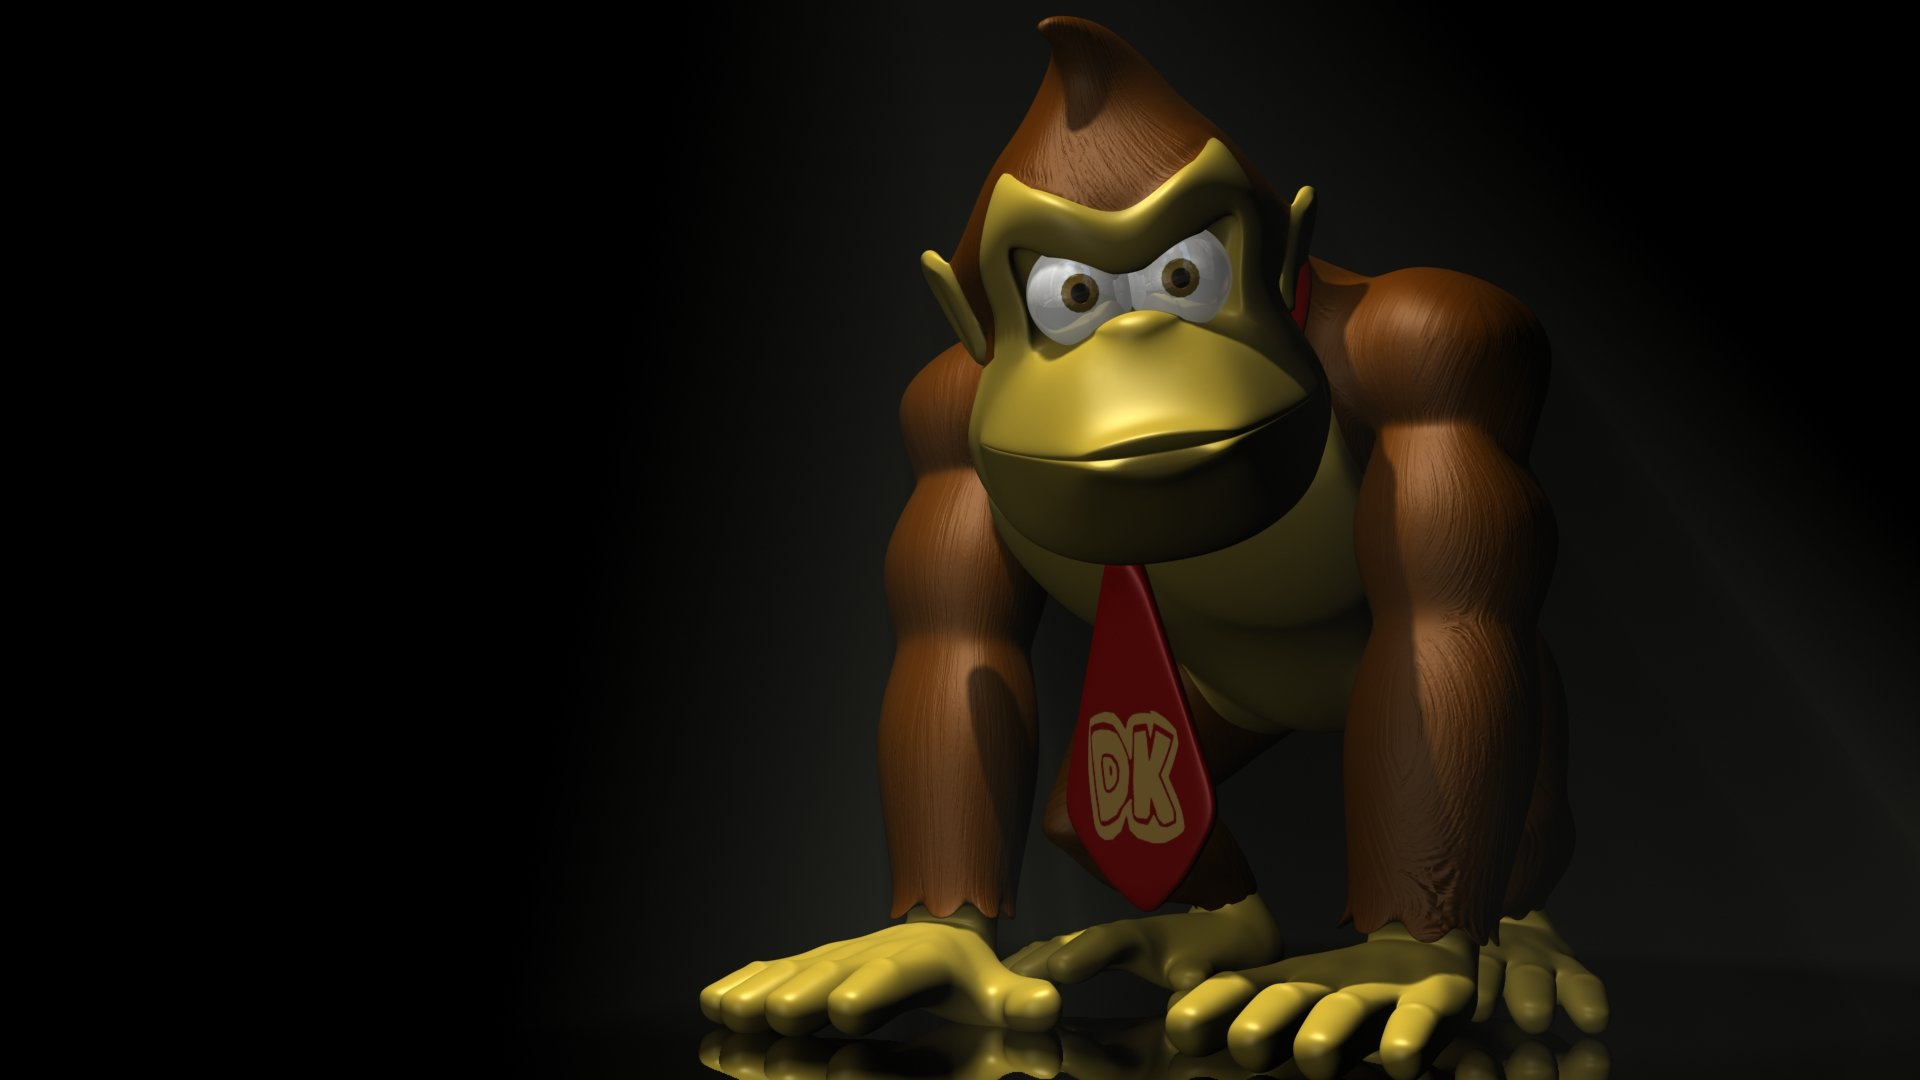 Free Download Donkey Kong Wallpaper Id319528 Hd 1080p For